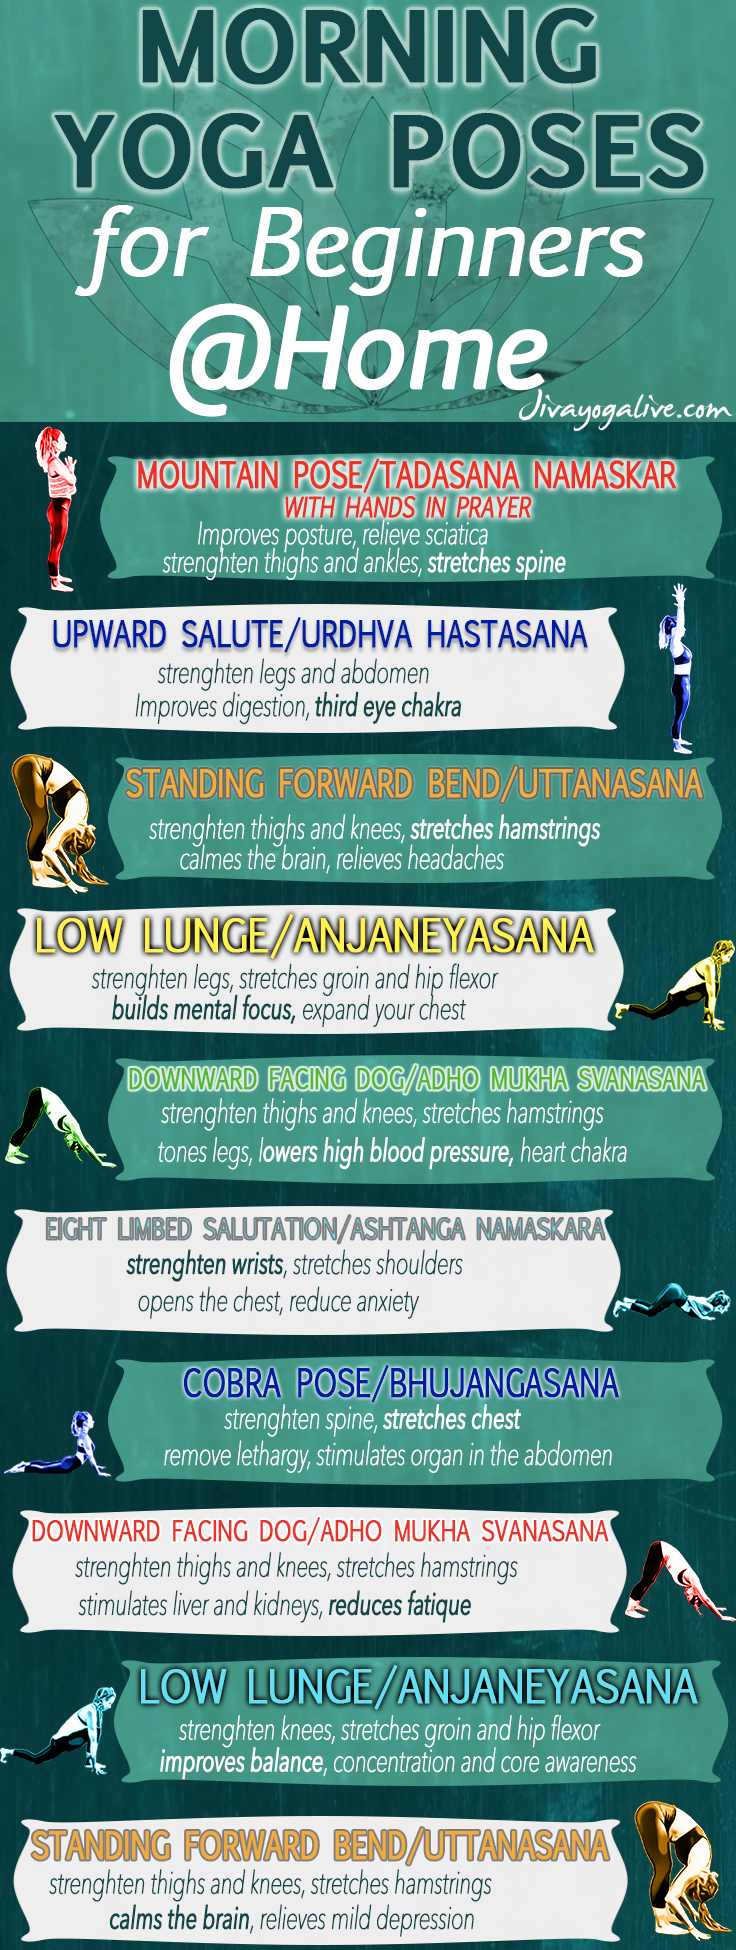 morning yoga poses for beginners at home infographic